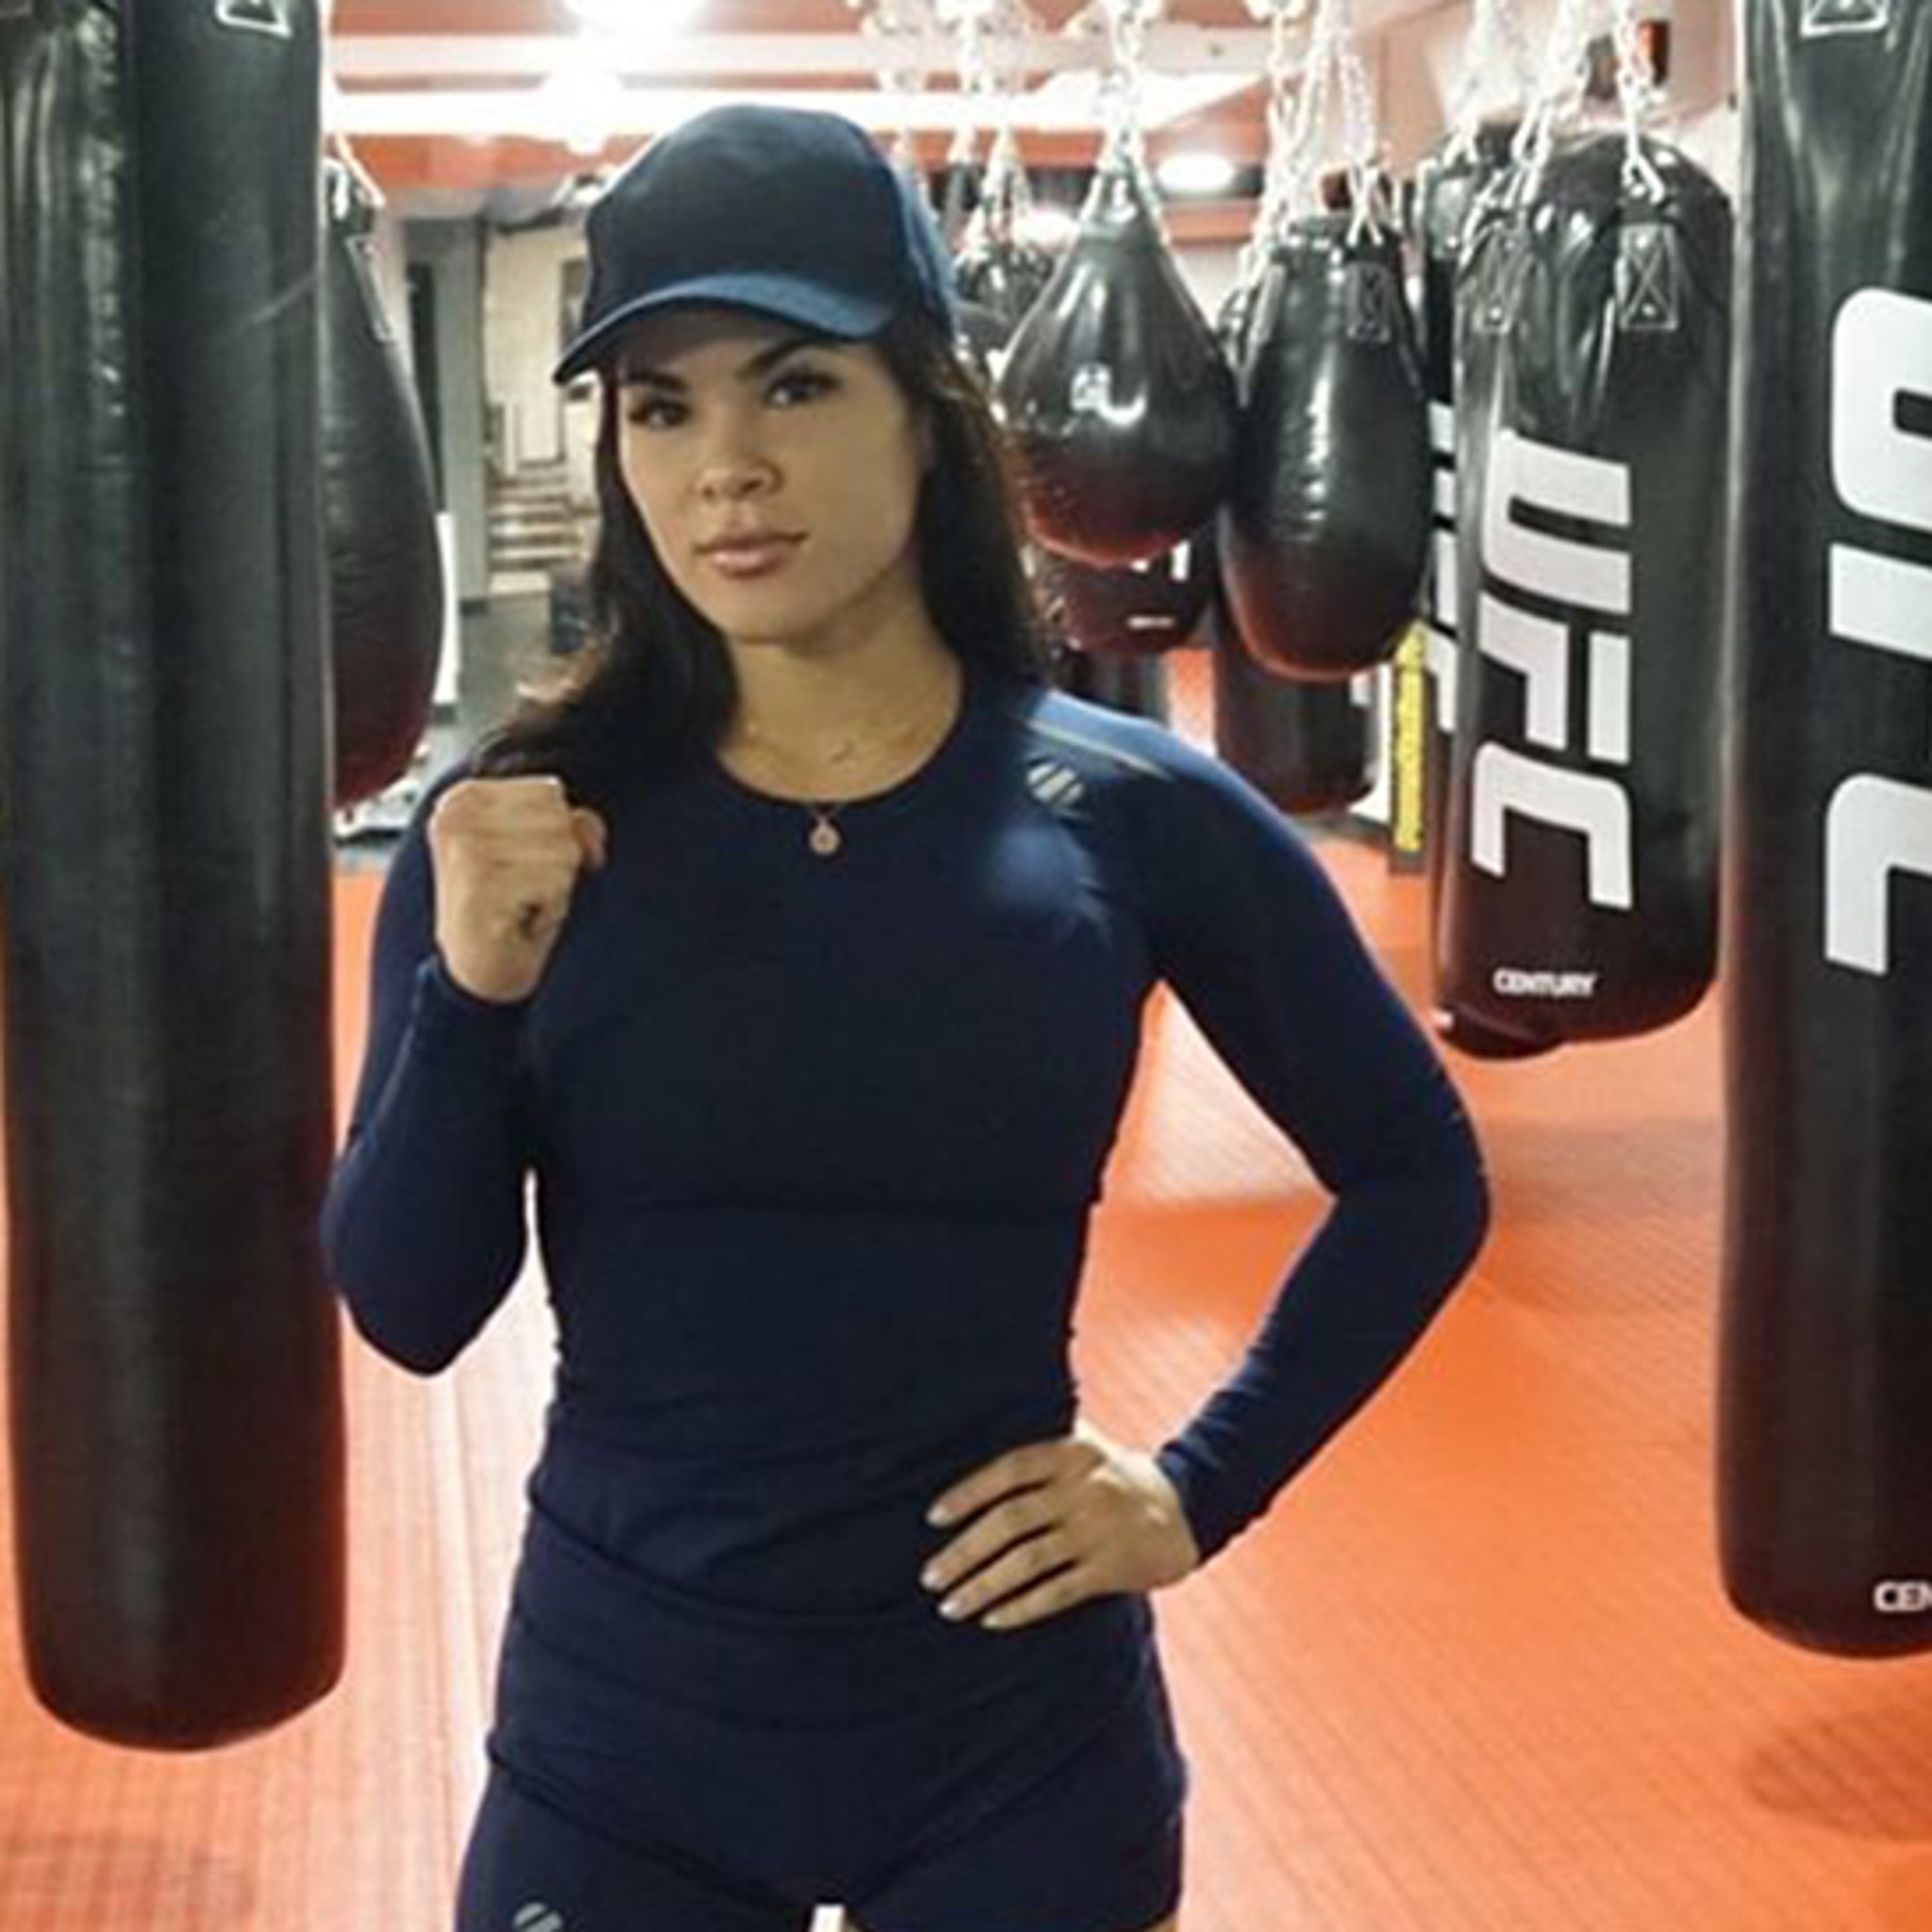 340aefea7dd UFC's Rachael Ostovich Pulls Out of Paige VanZant Fight After Assault